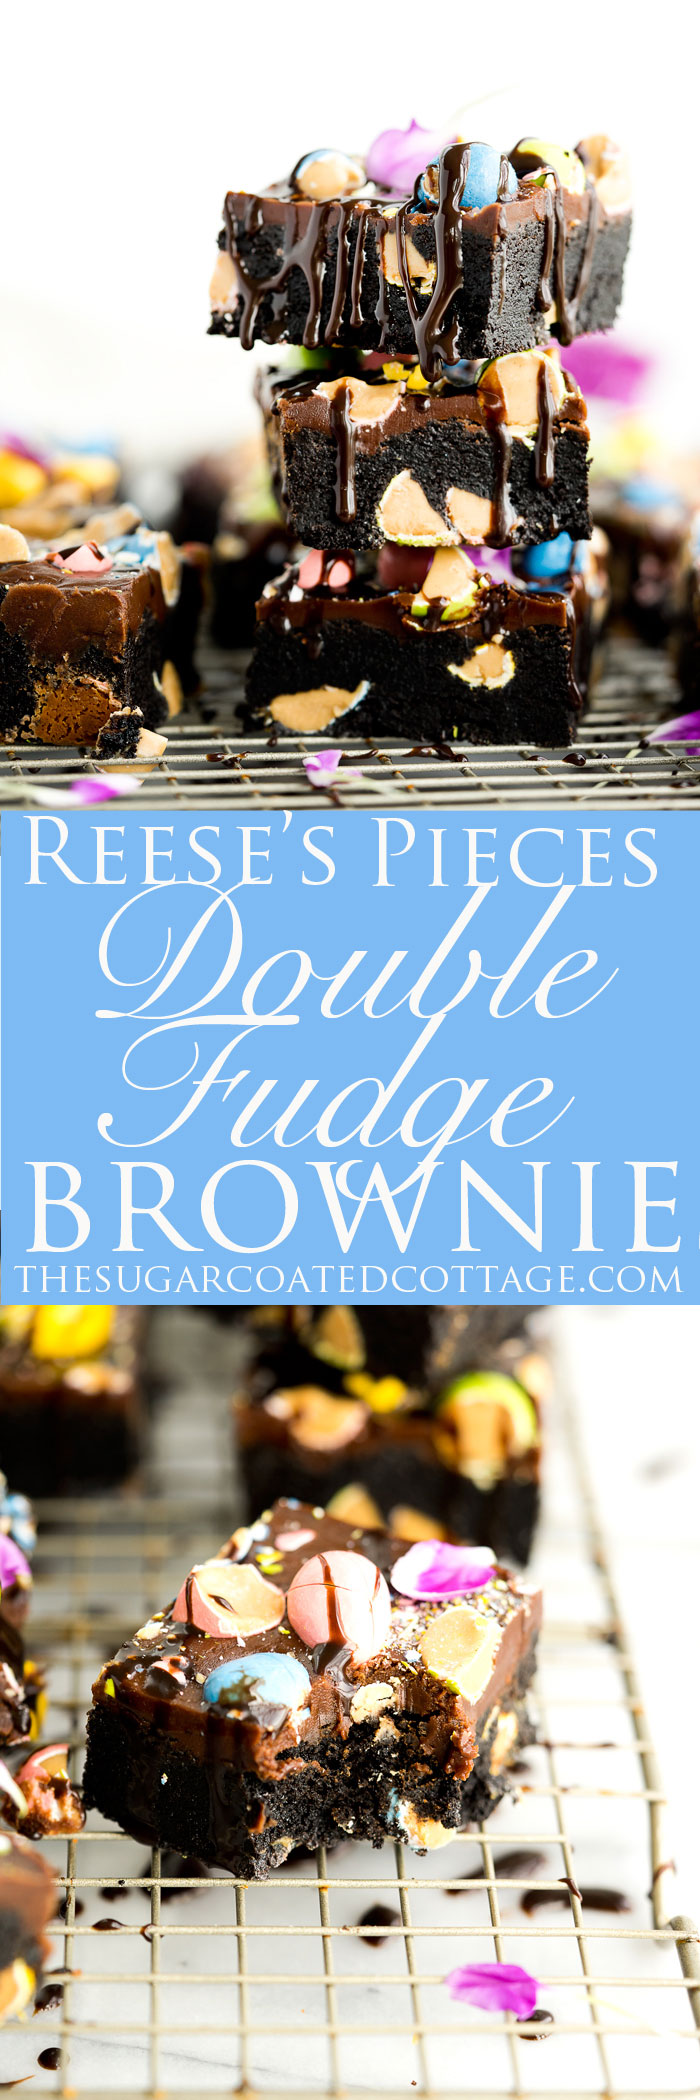 Reese's Pieces Double Fudge Brownie Recipe. My childhood favorite candy, Reese's Pieces, folded into deep dark fudge brownies and then sprinkled on top of fudgy frosting. By far the best fudgy brownie recipe!! | thesugarcoatedcottage.com #brownies #recipe #reeses pieces #frosting